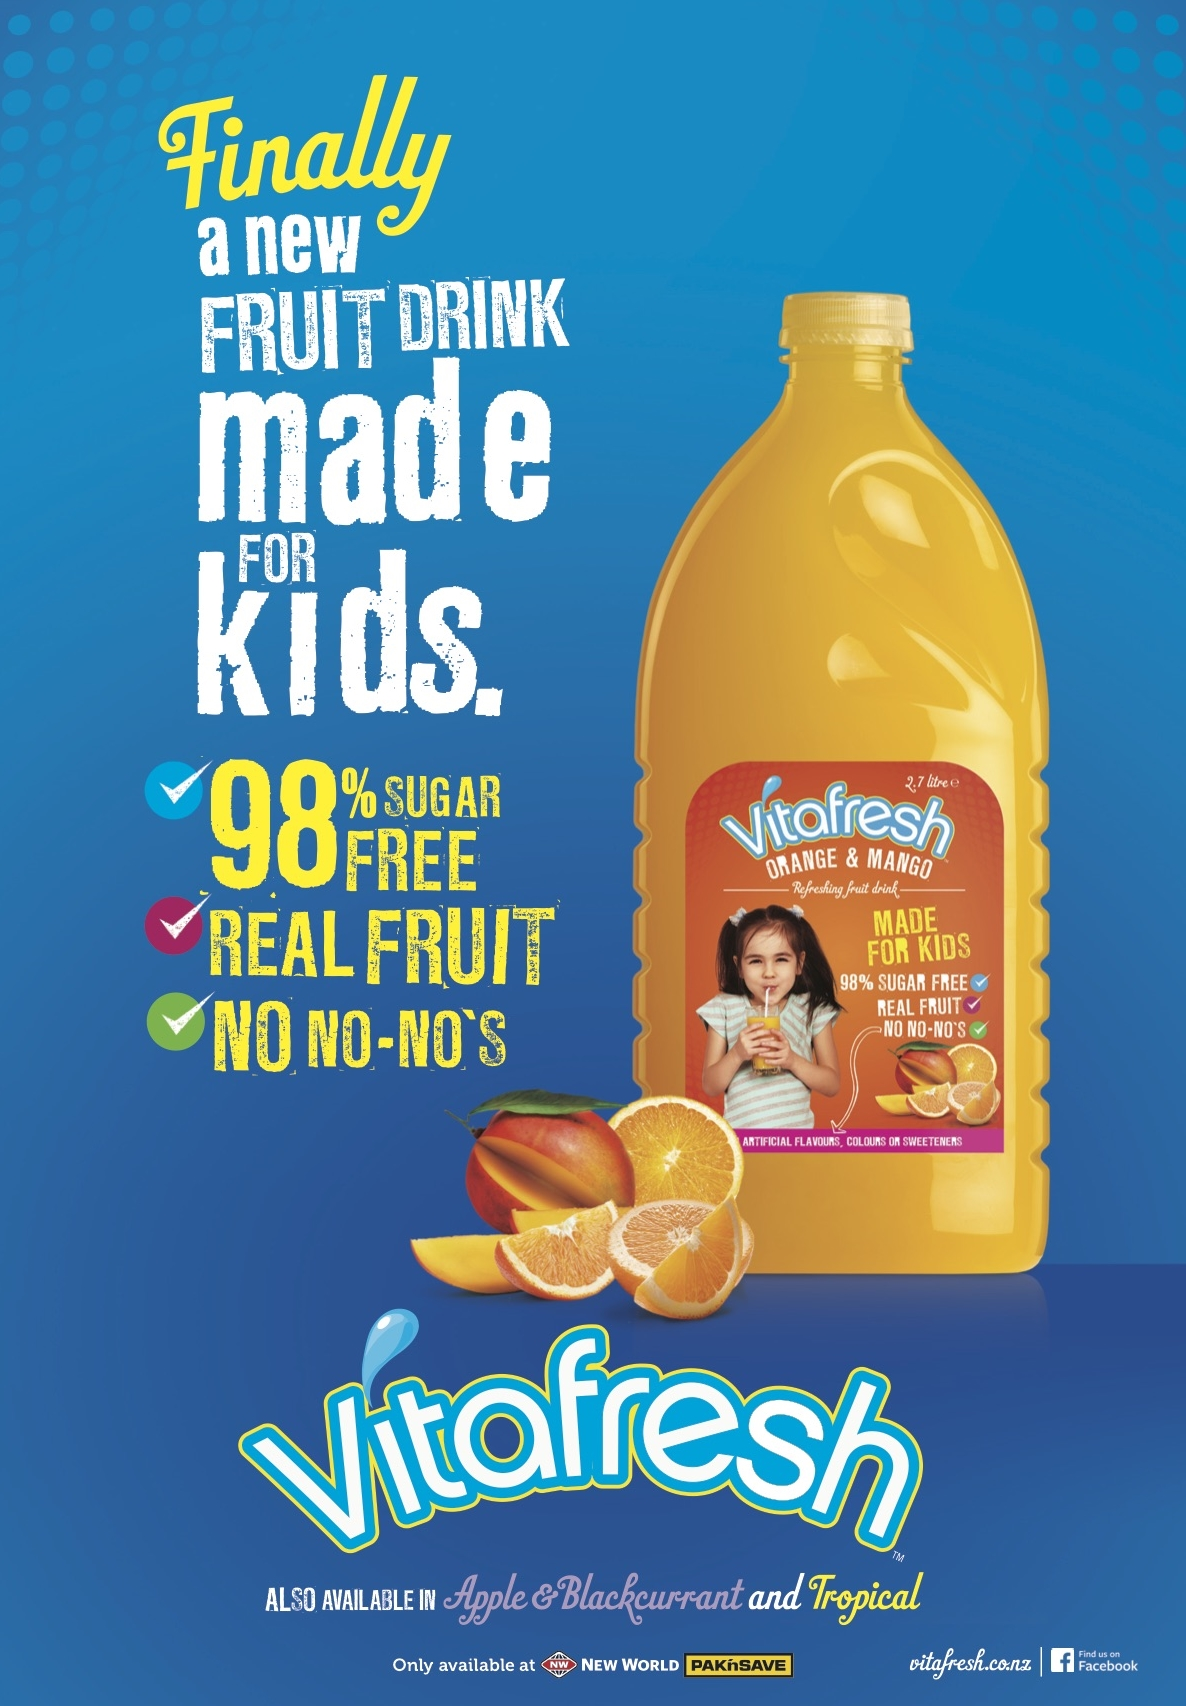 VITAFRESH    Re-invigorating the brand through a new positioning and product format